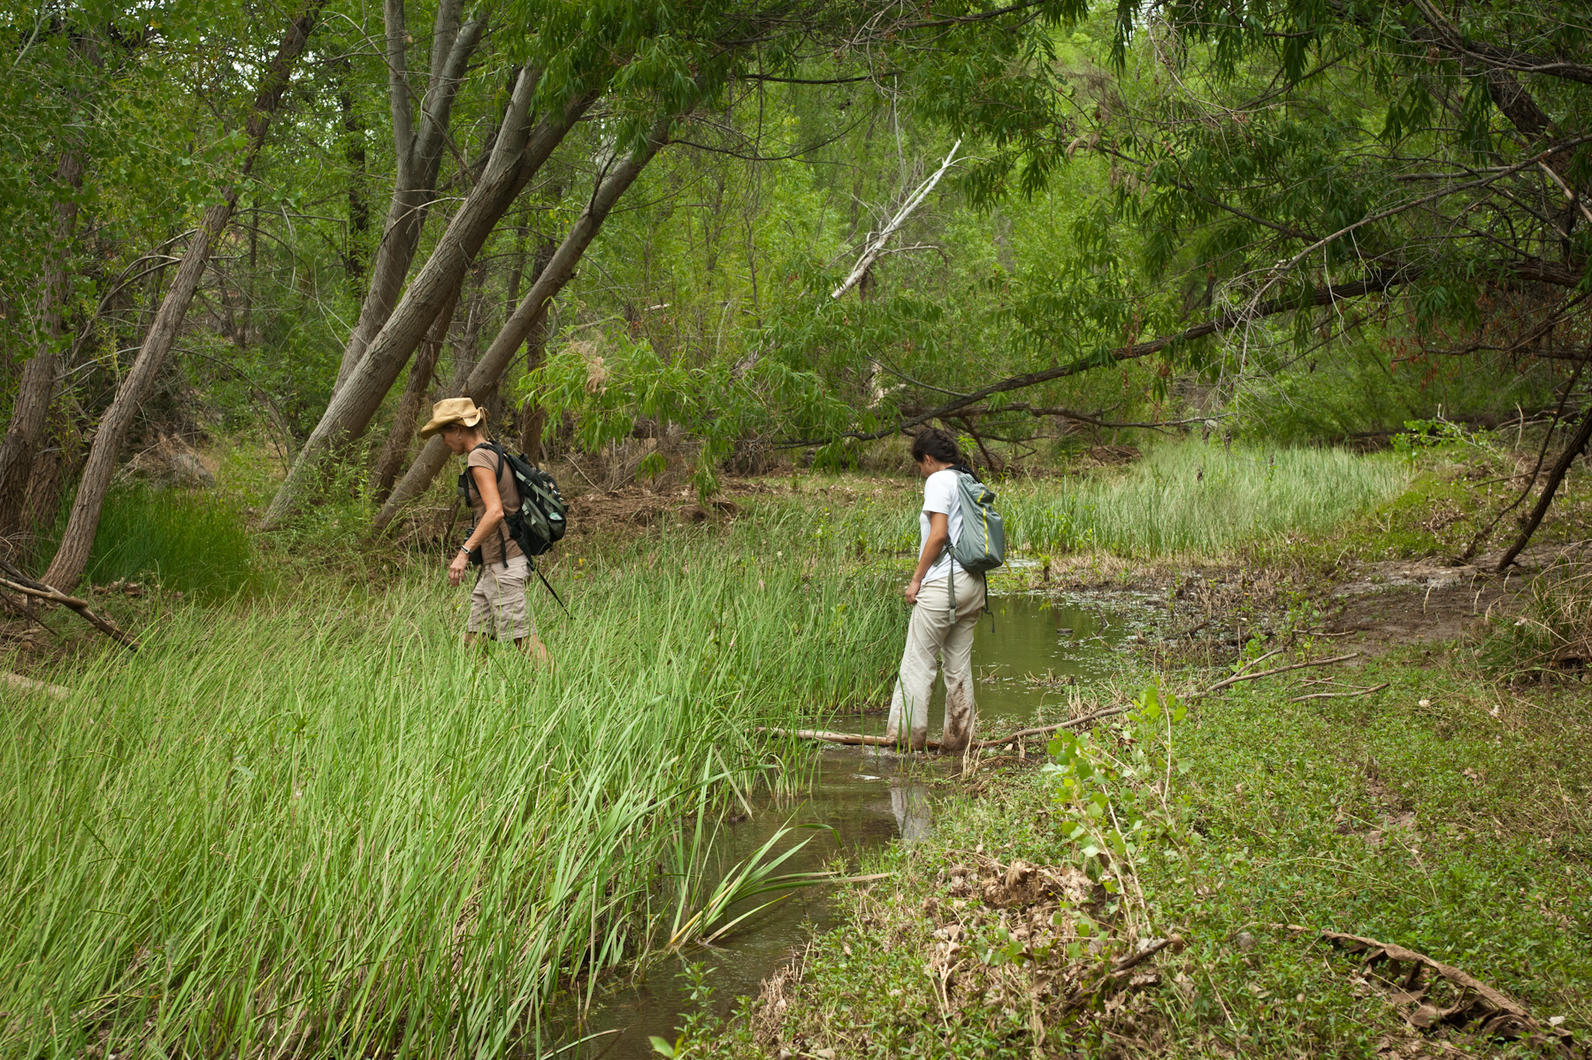 Audubon staff and interns survey for birds in cottonwoods and willows along the Agua Fria River.